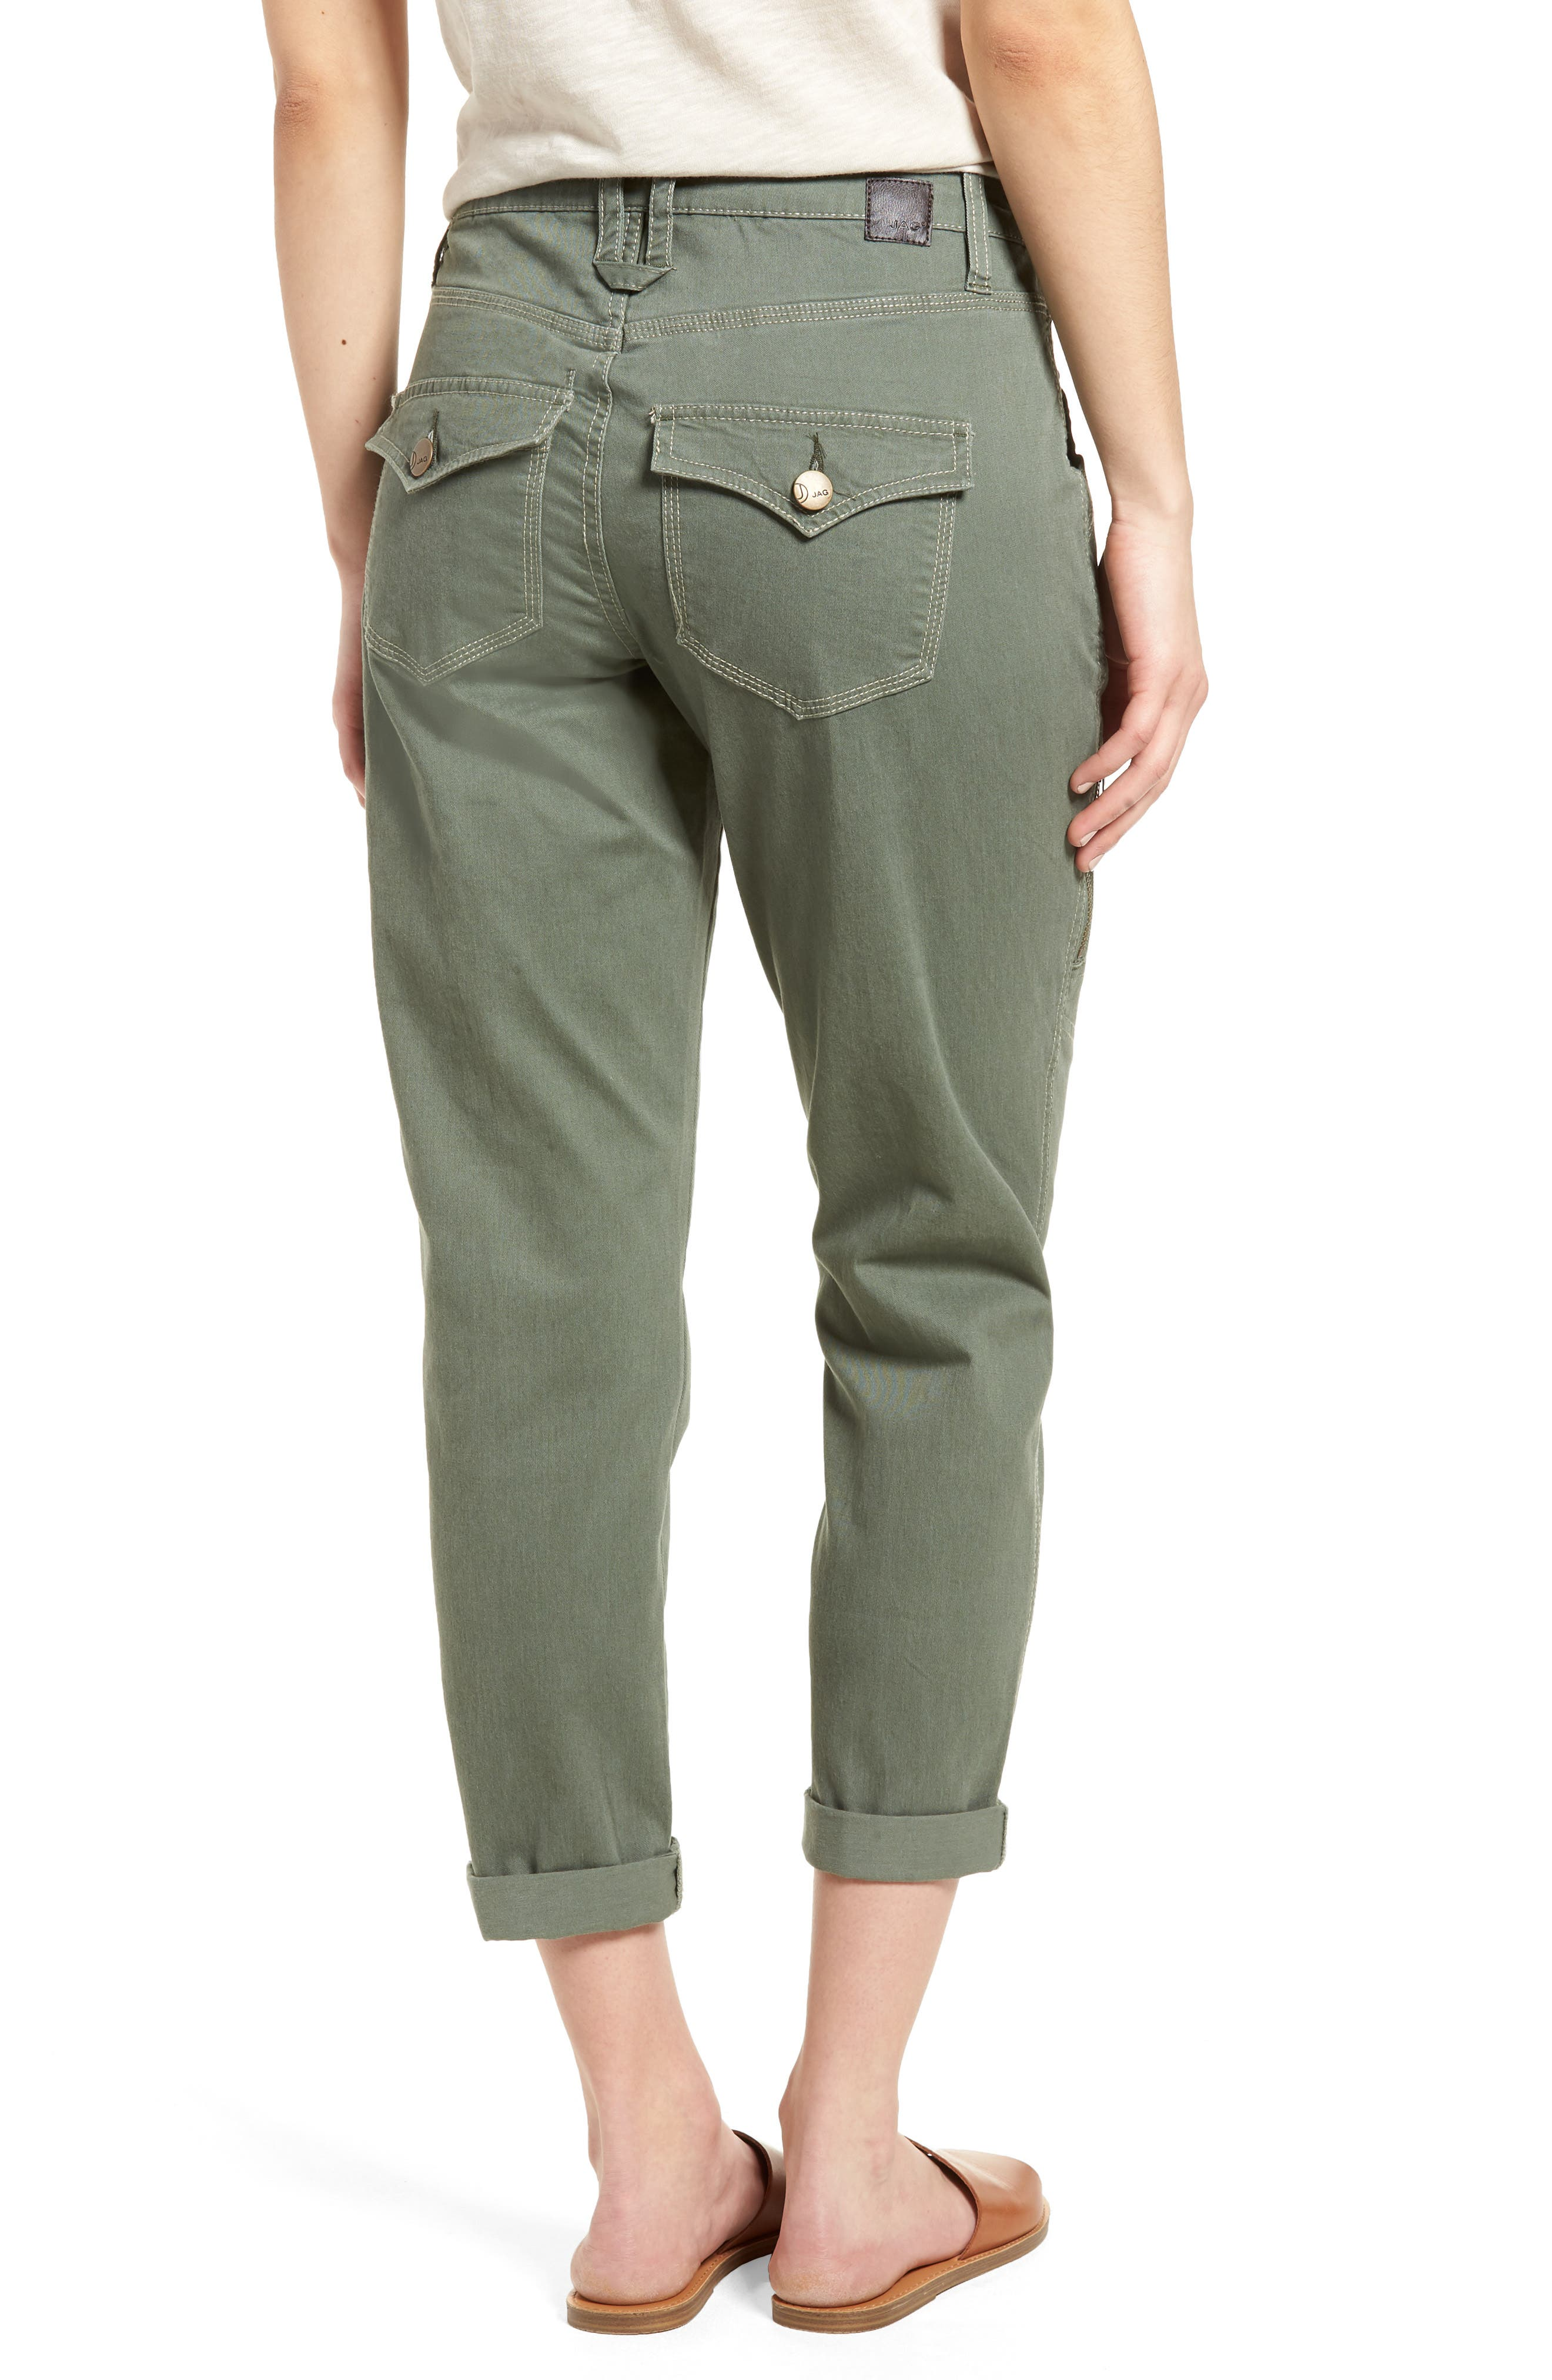 Gable Stretch Twill Utility Pants,                             Alternate thumbnail 7, color,